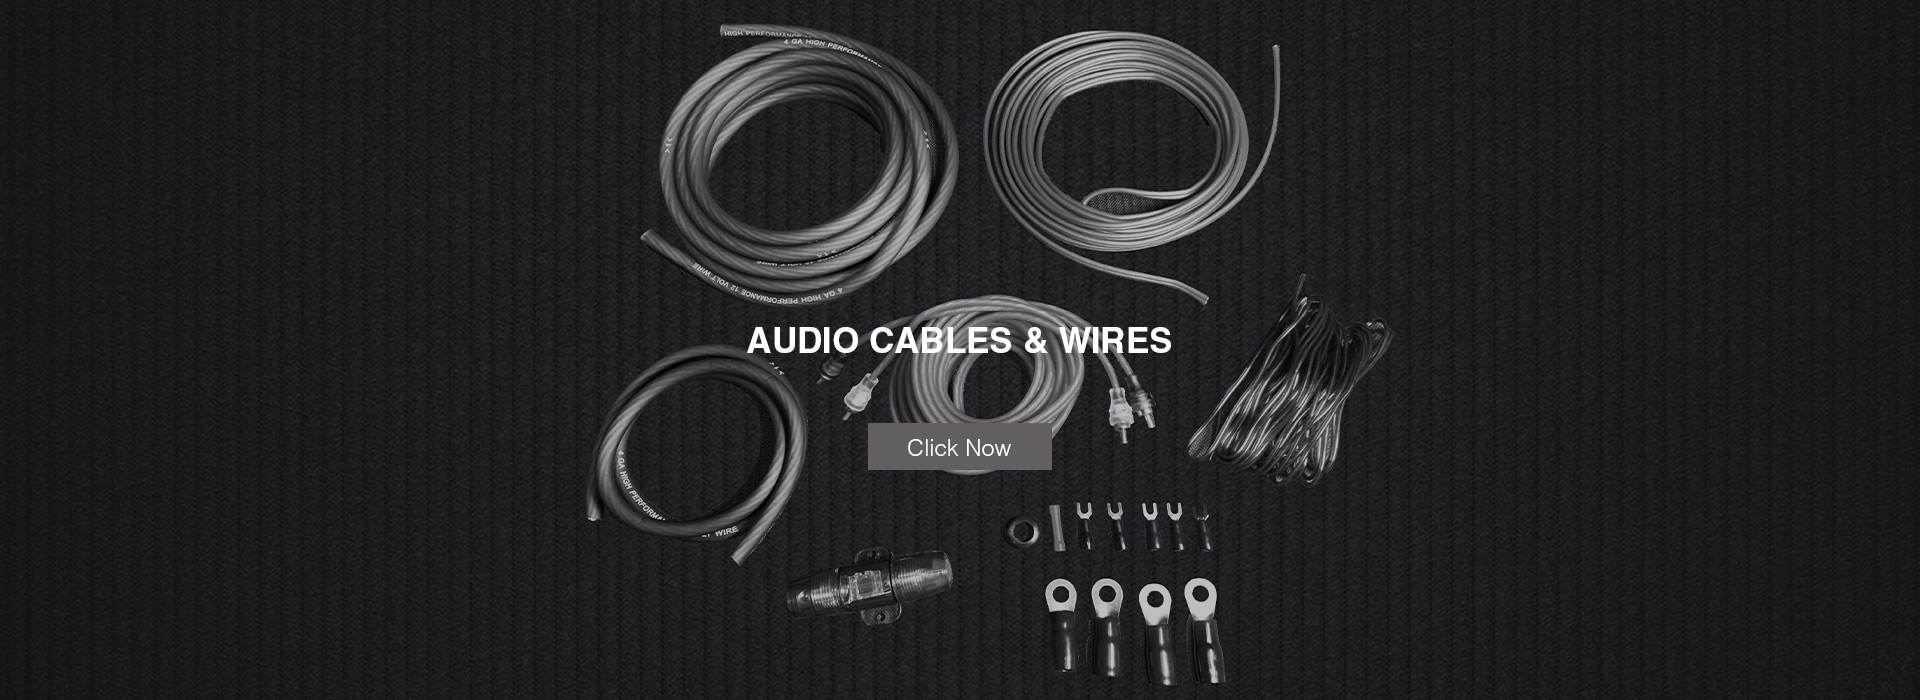 Audio Cables and Wires